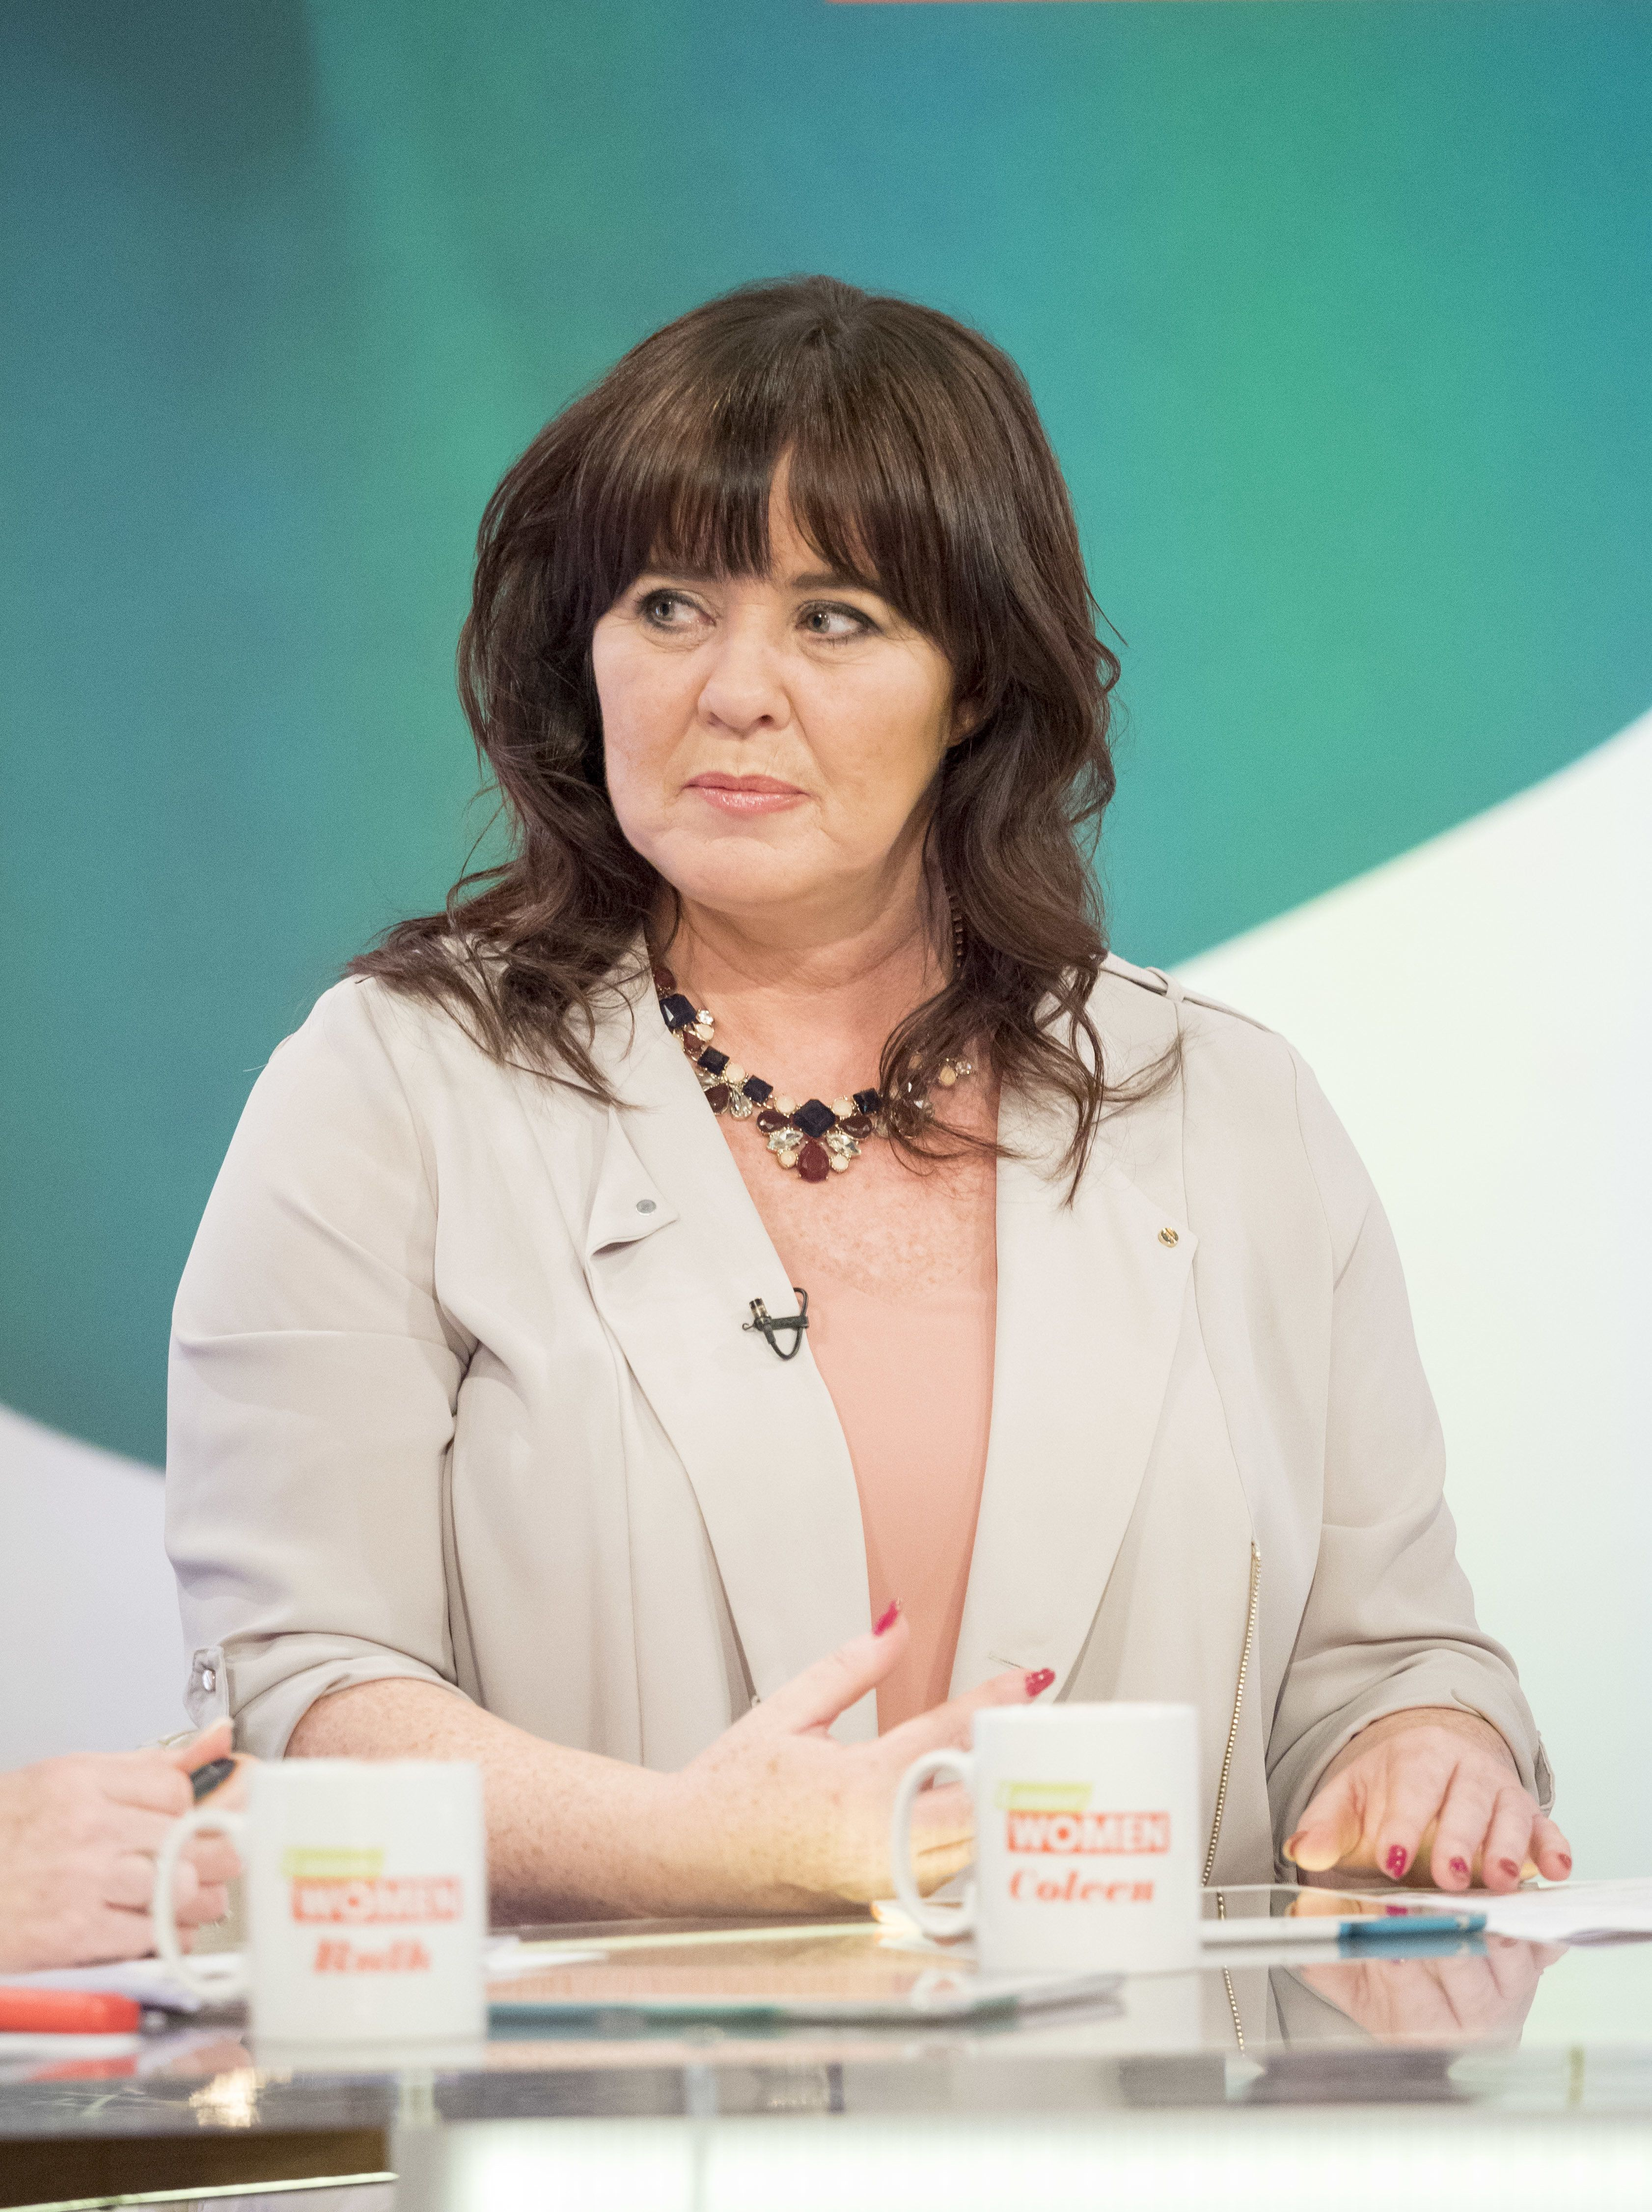 Loose Women's Coleen Nolan 'To Take A Break From The